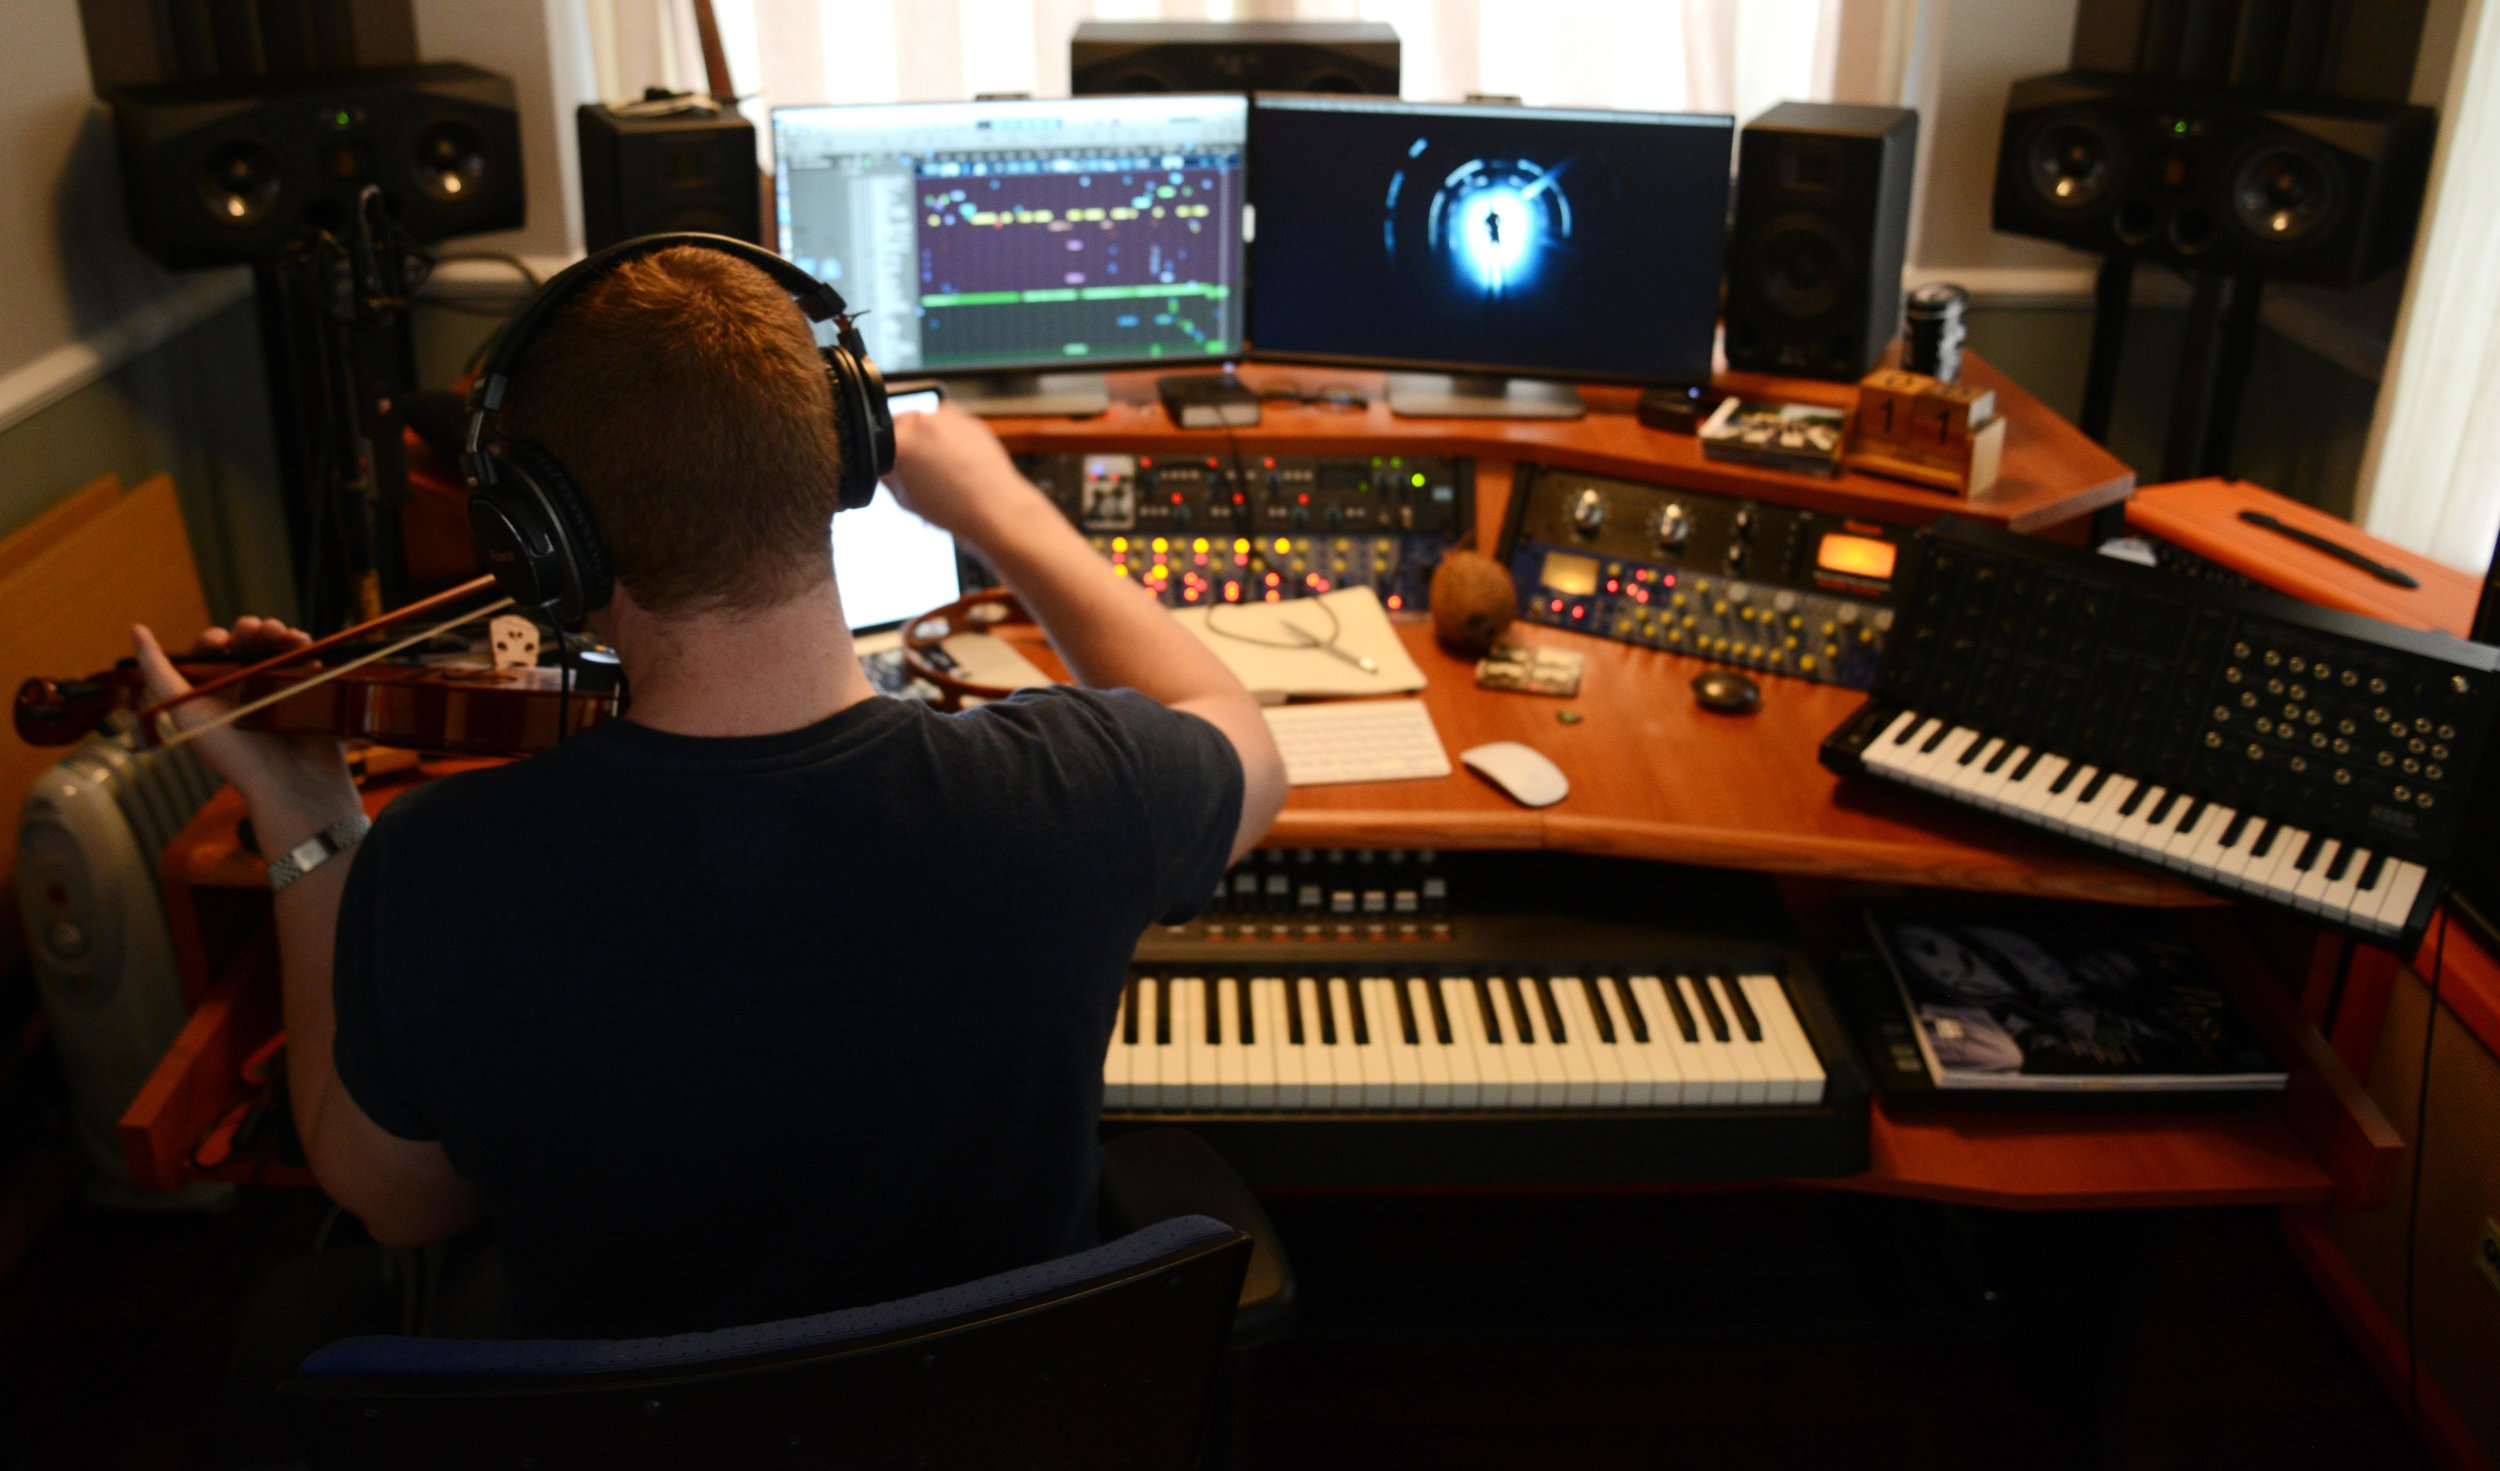 The film's composer (and co-producer) Harry Kirby at work